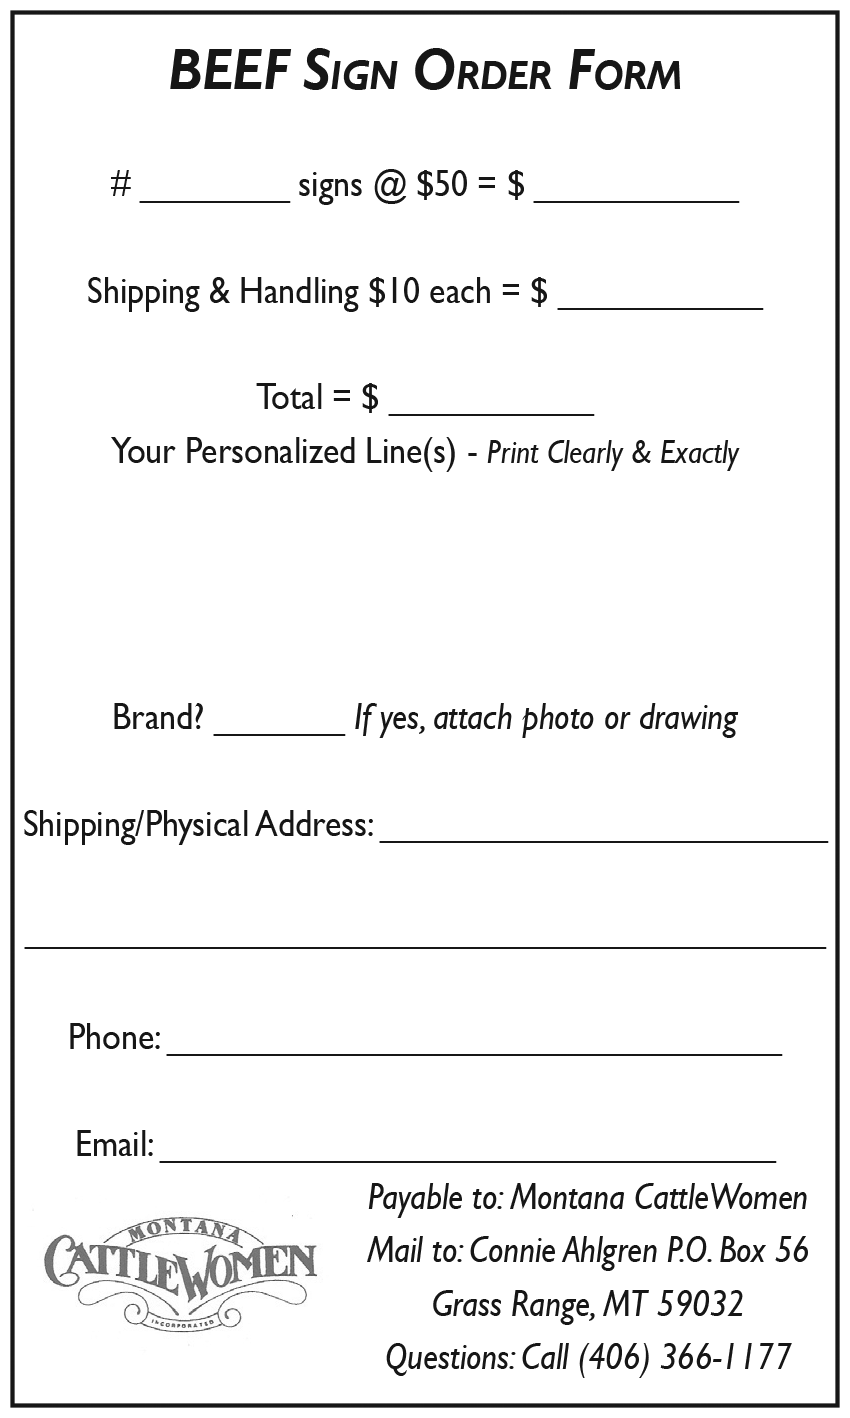 Print off this order form and mail with payment to MCW.